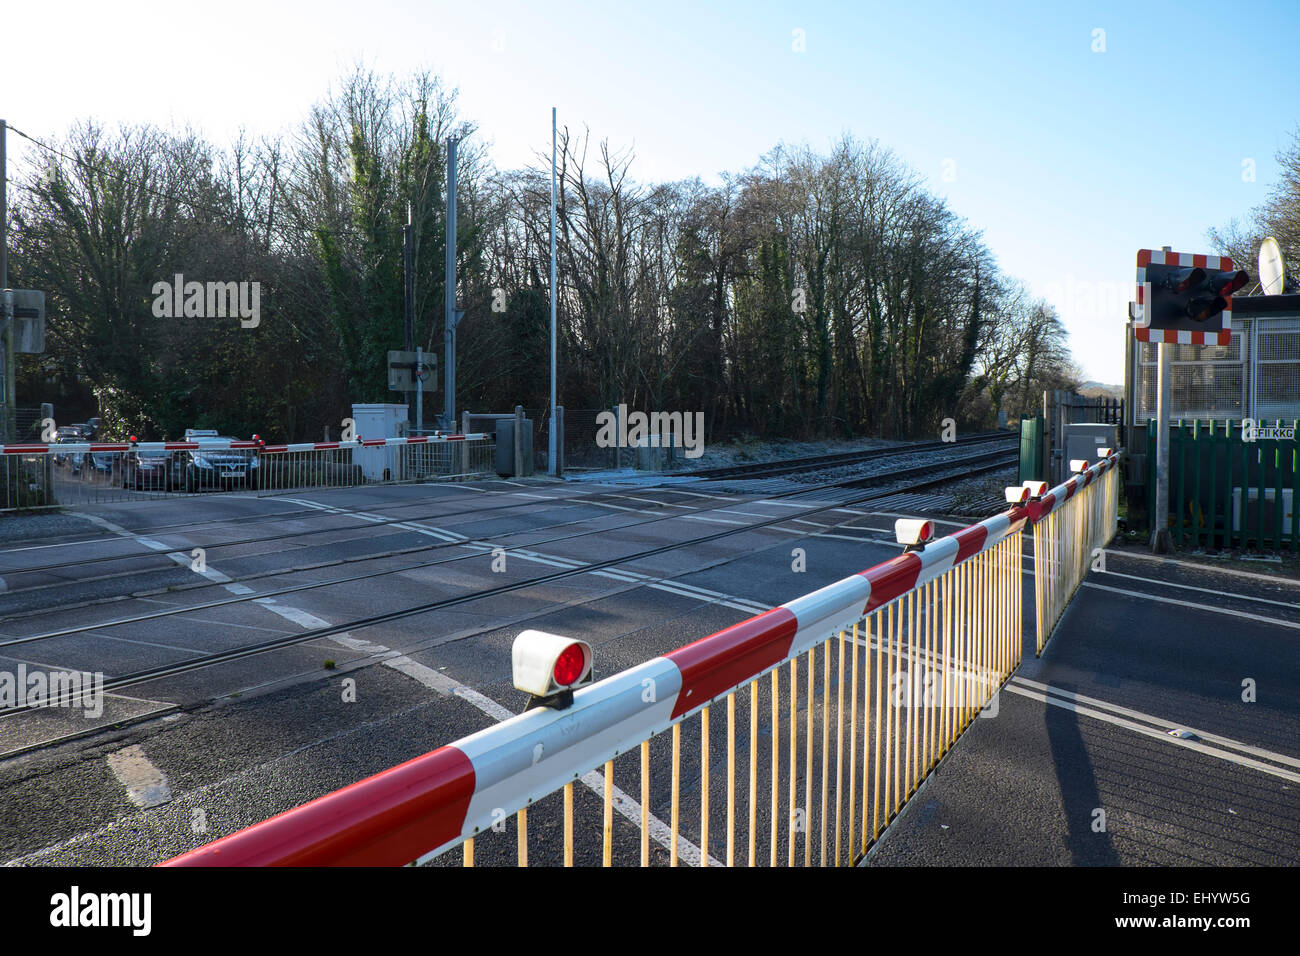 Gates closed at level crossing, railway line, St Fagan's, Cardiff, Wales, UK - Stock Image